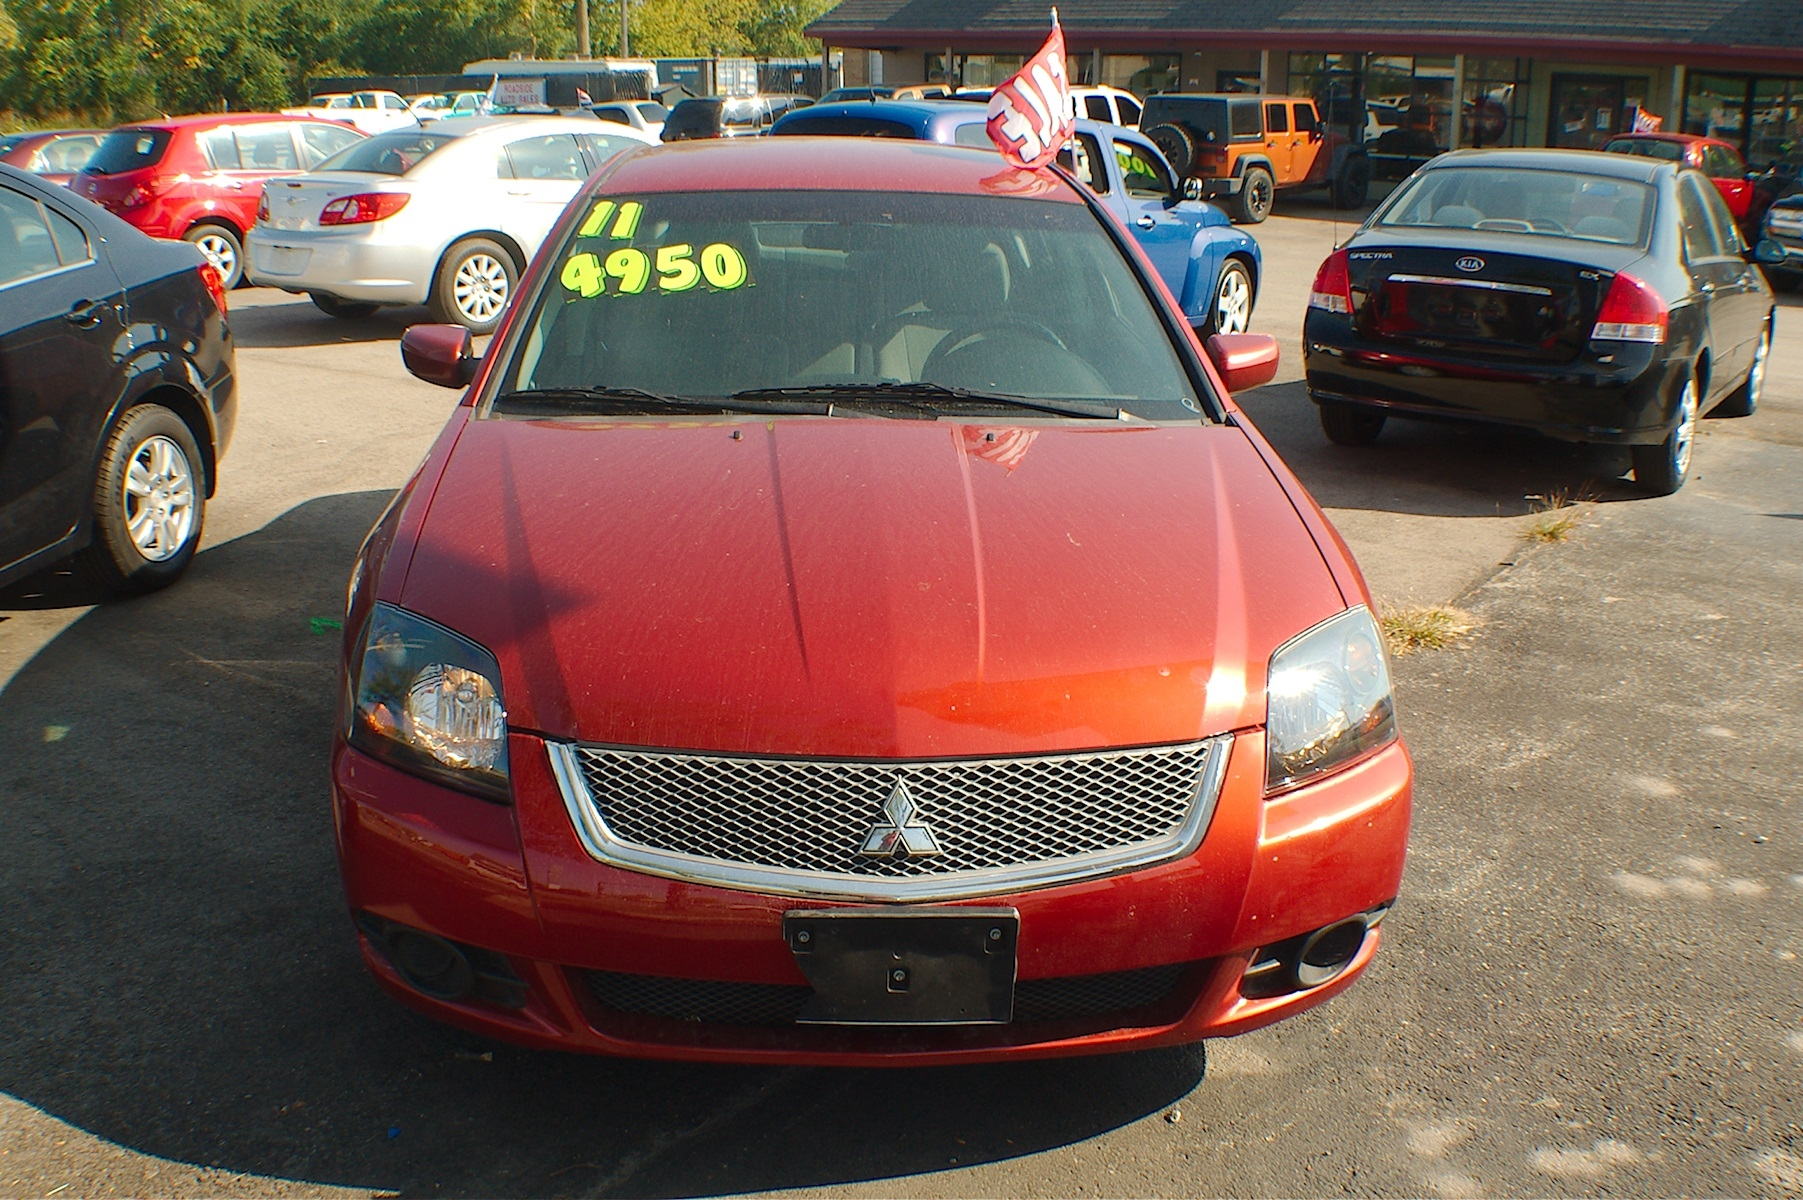 2011 Mitsubishi Galant Red Sedan Used Car Sale Gurnee Kenosha Mchenry Chicago Illinois